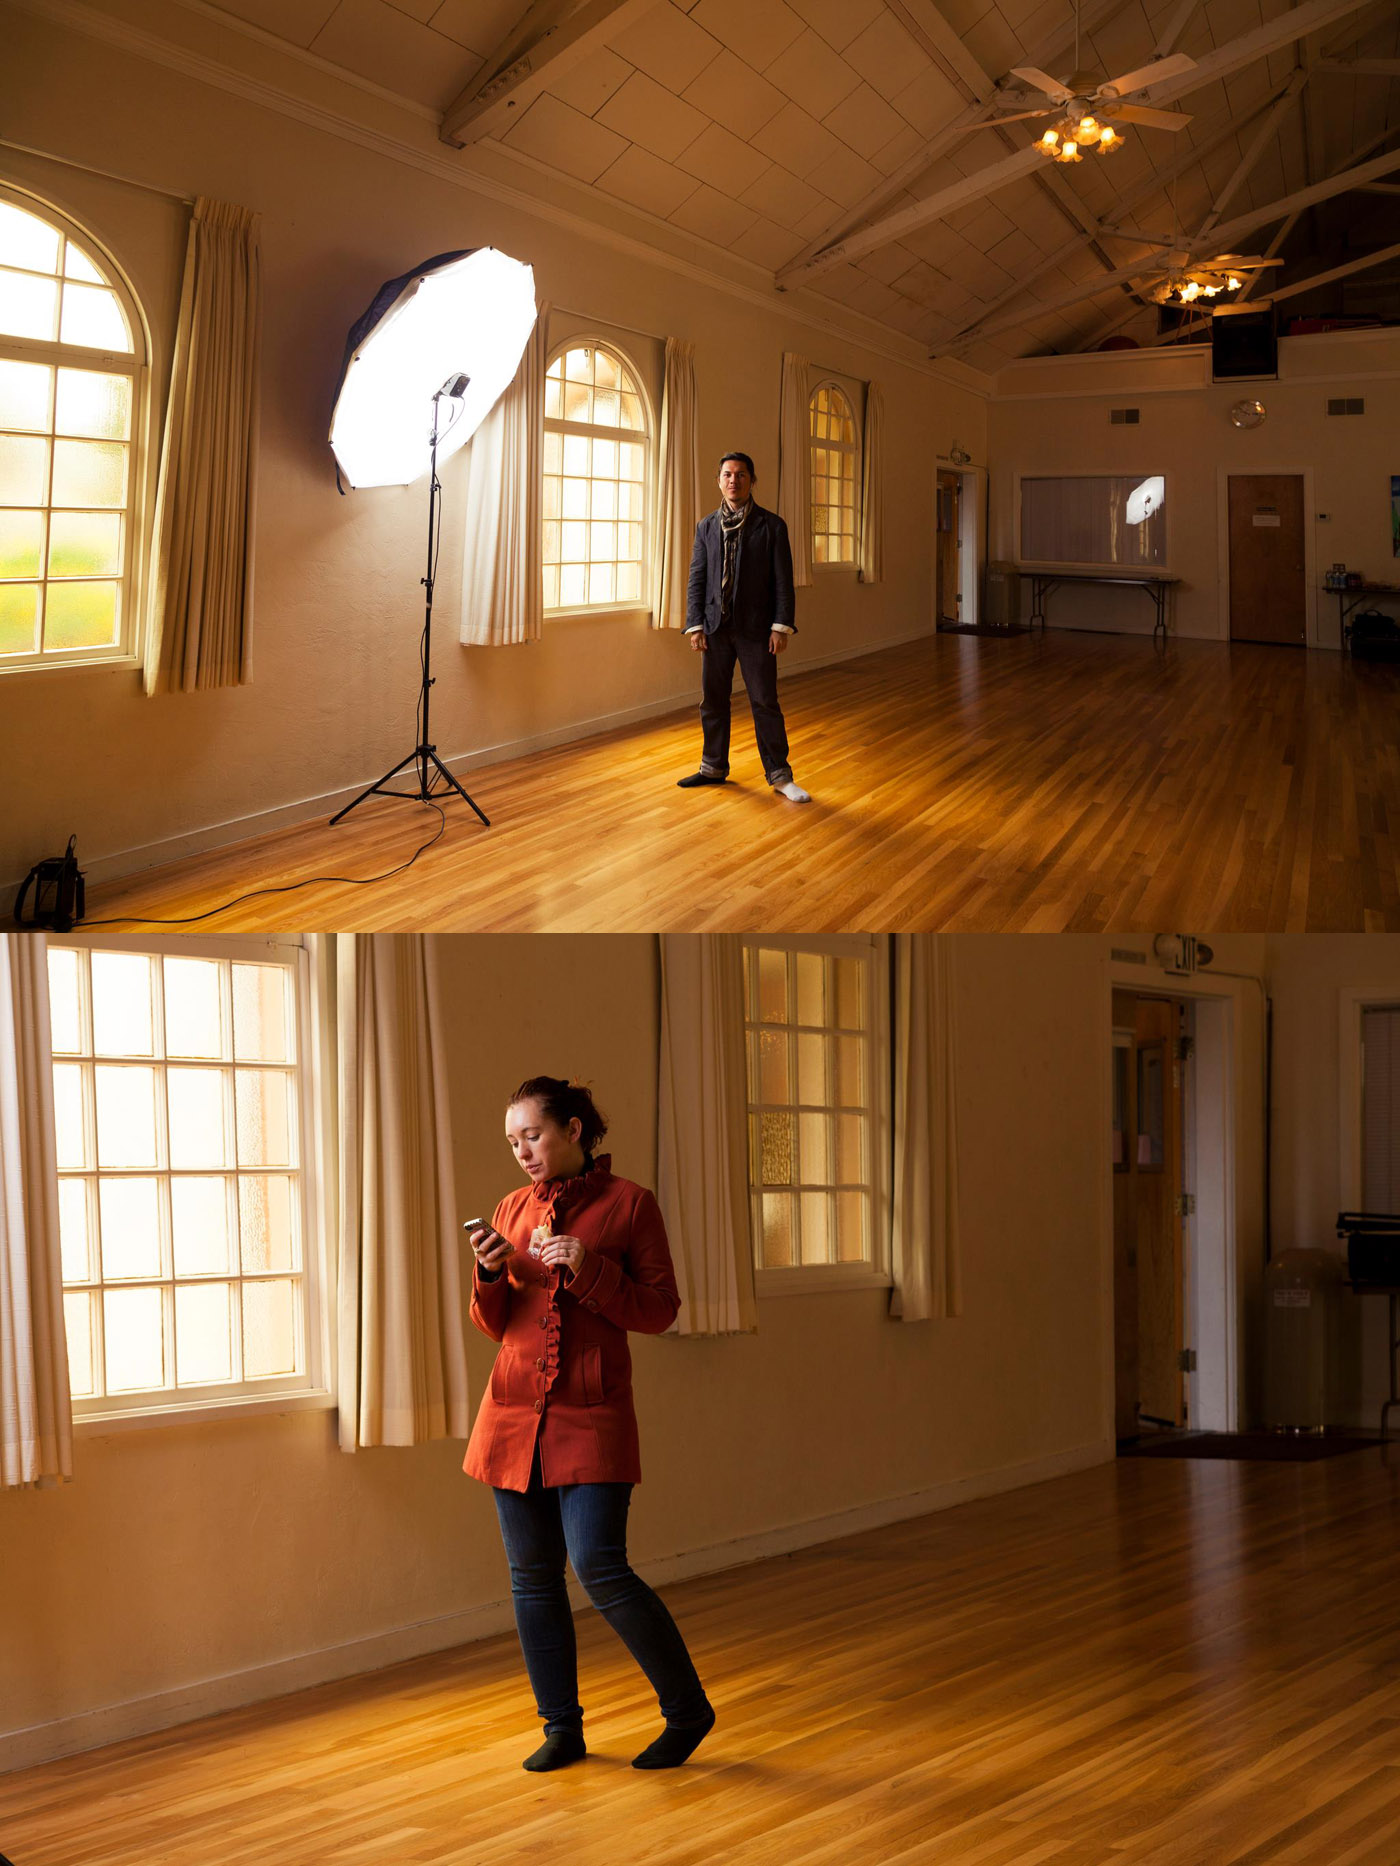 Here are a couple photos of Myself and Christa setting up for some shots at a local yoga studio.